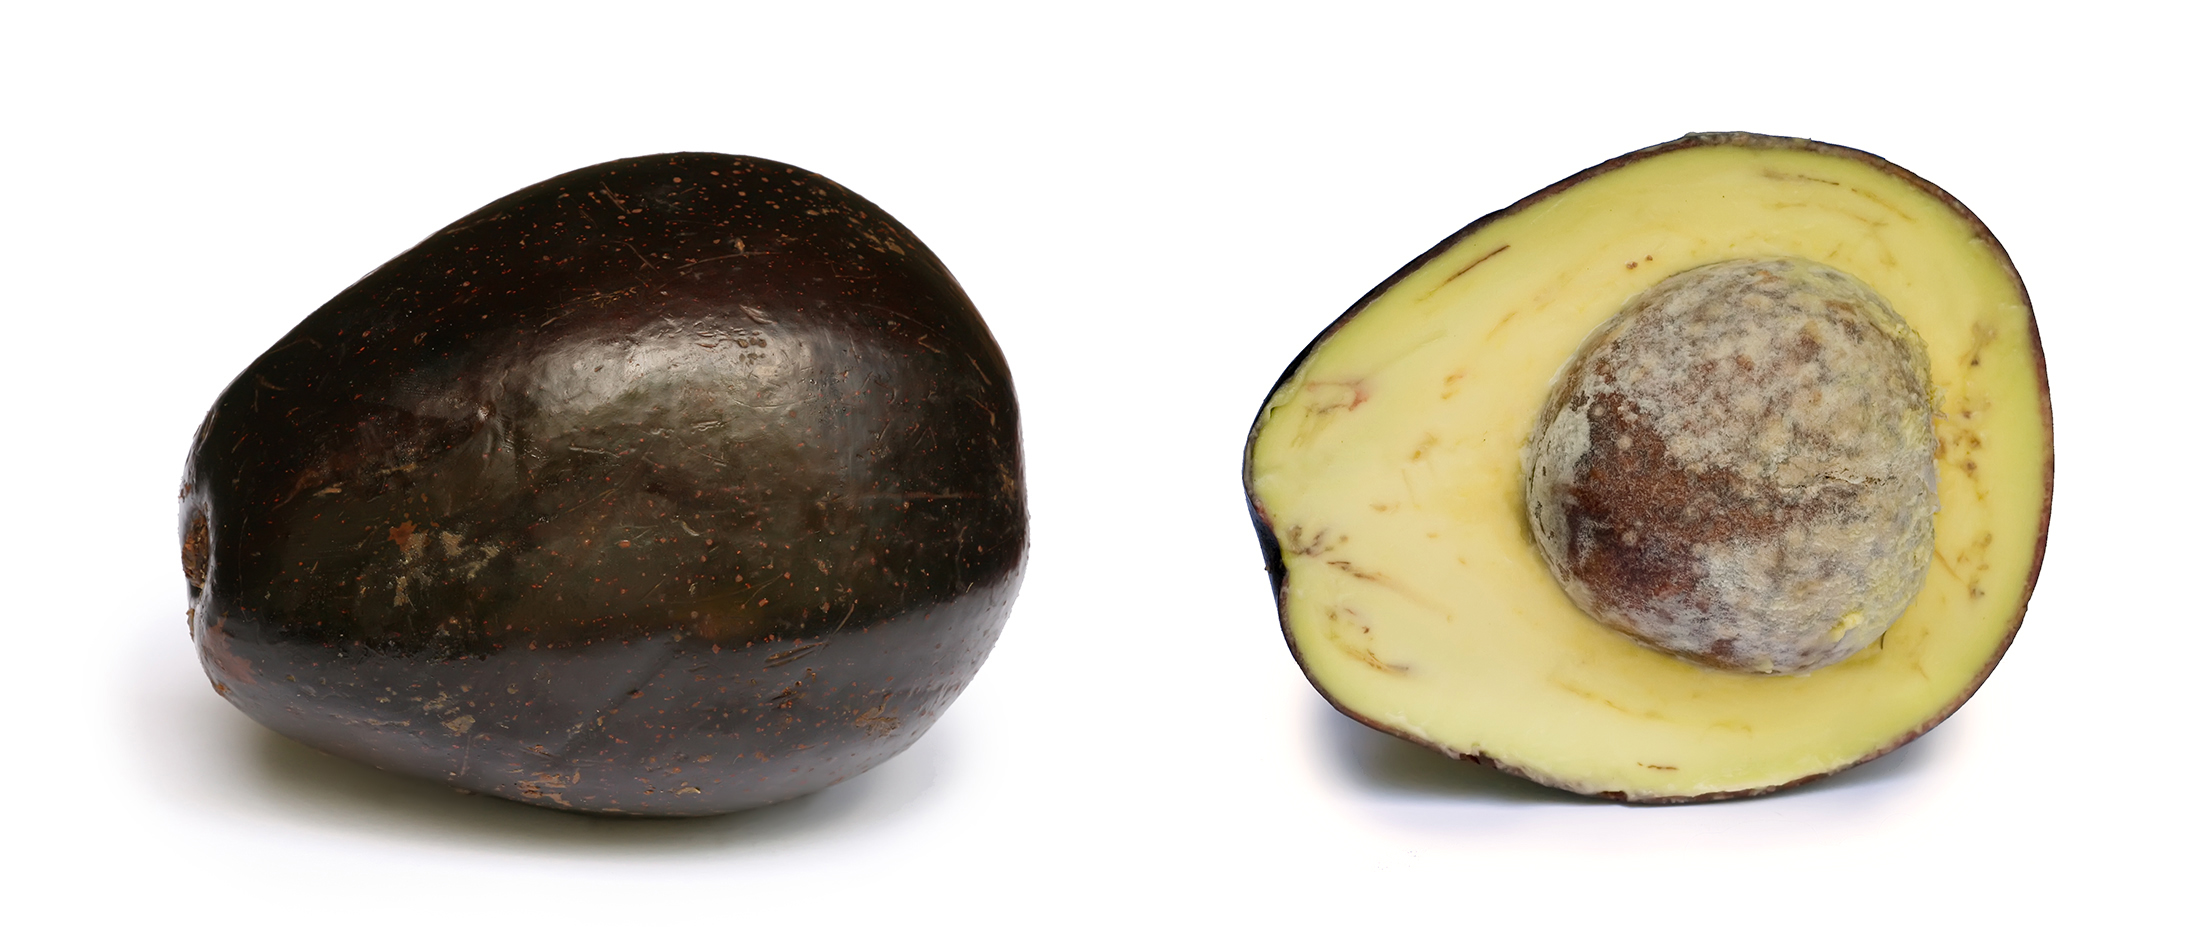 Persea americana fruit and cross-section showing seed